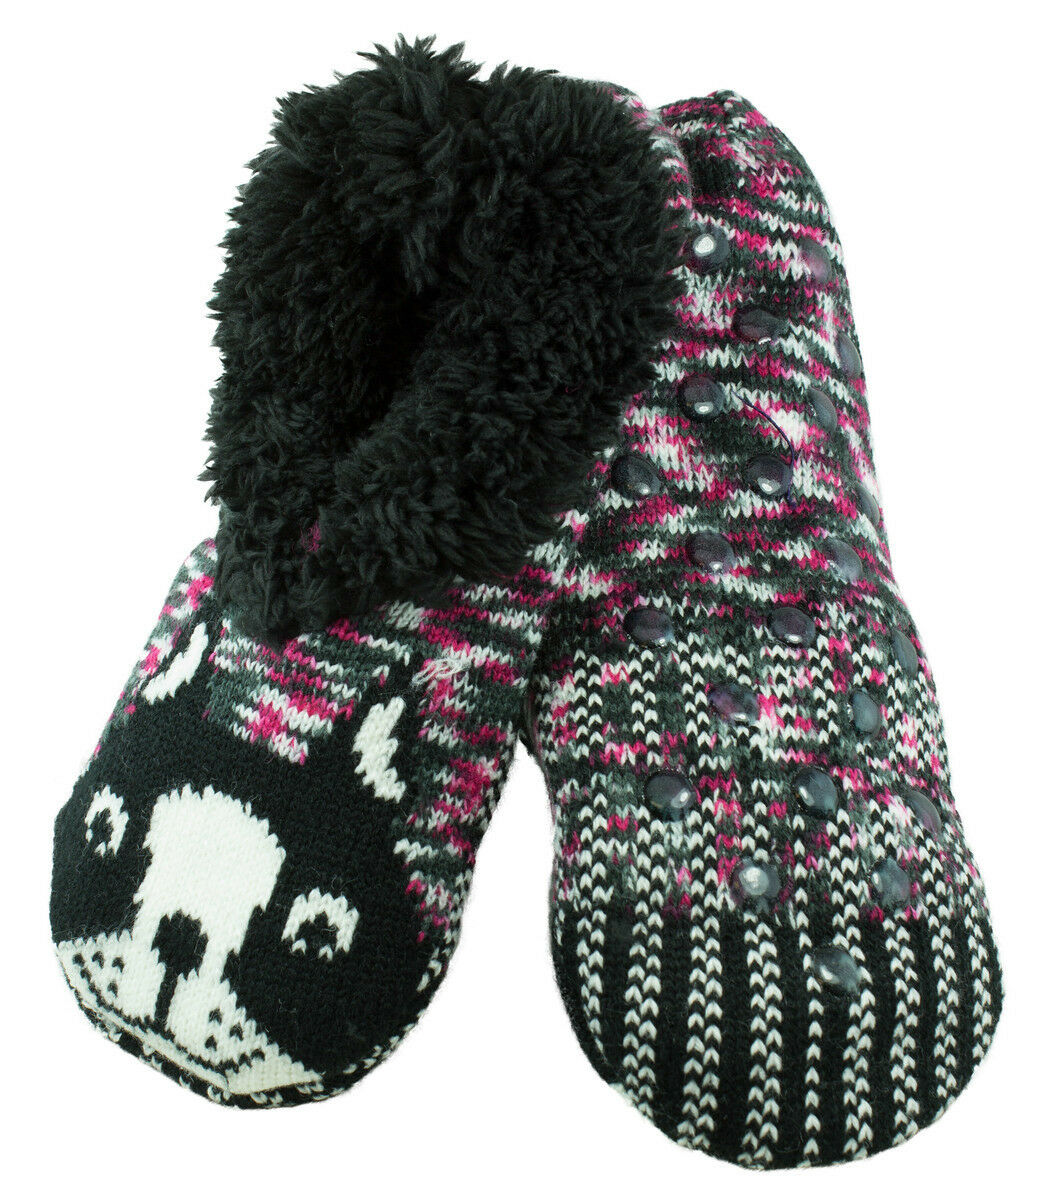 Jacques Moret Slipper Socks - Multiple Animal Styles